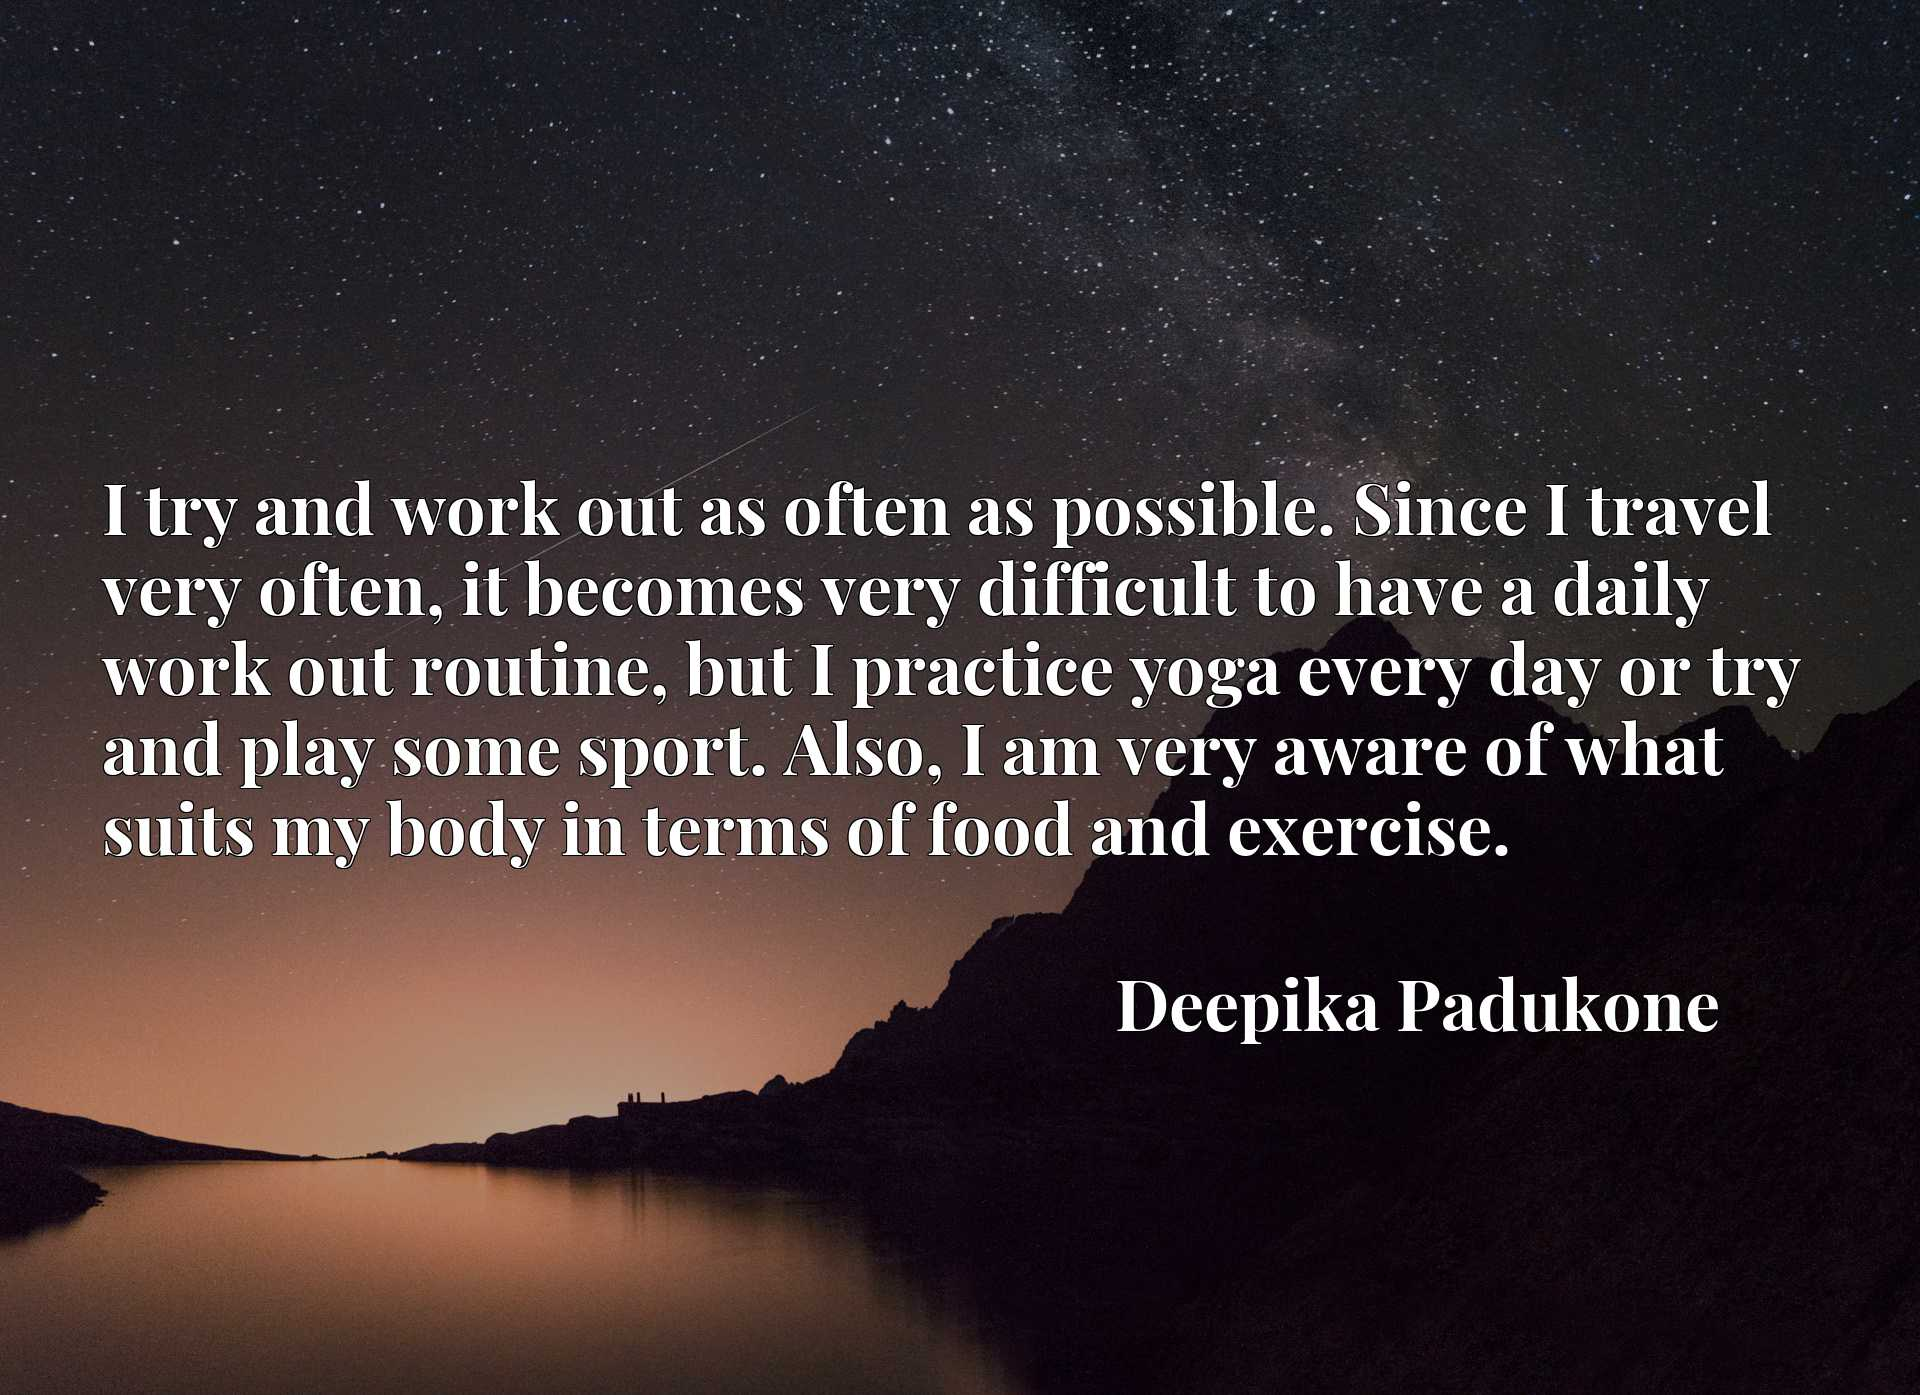 I try and work out as often as possible. Since I travel very often, it becomes very difficult to have a daily work out routine, but I practice yoga every day or try and play some sport. Also, I am very aware of what suits my body in terms of food and exercise.